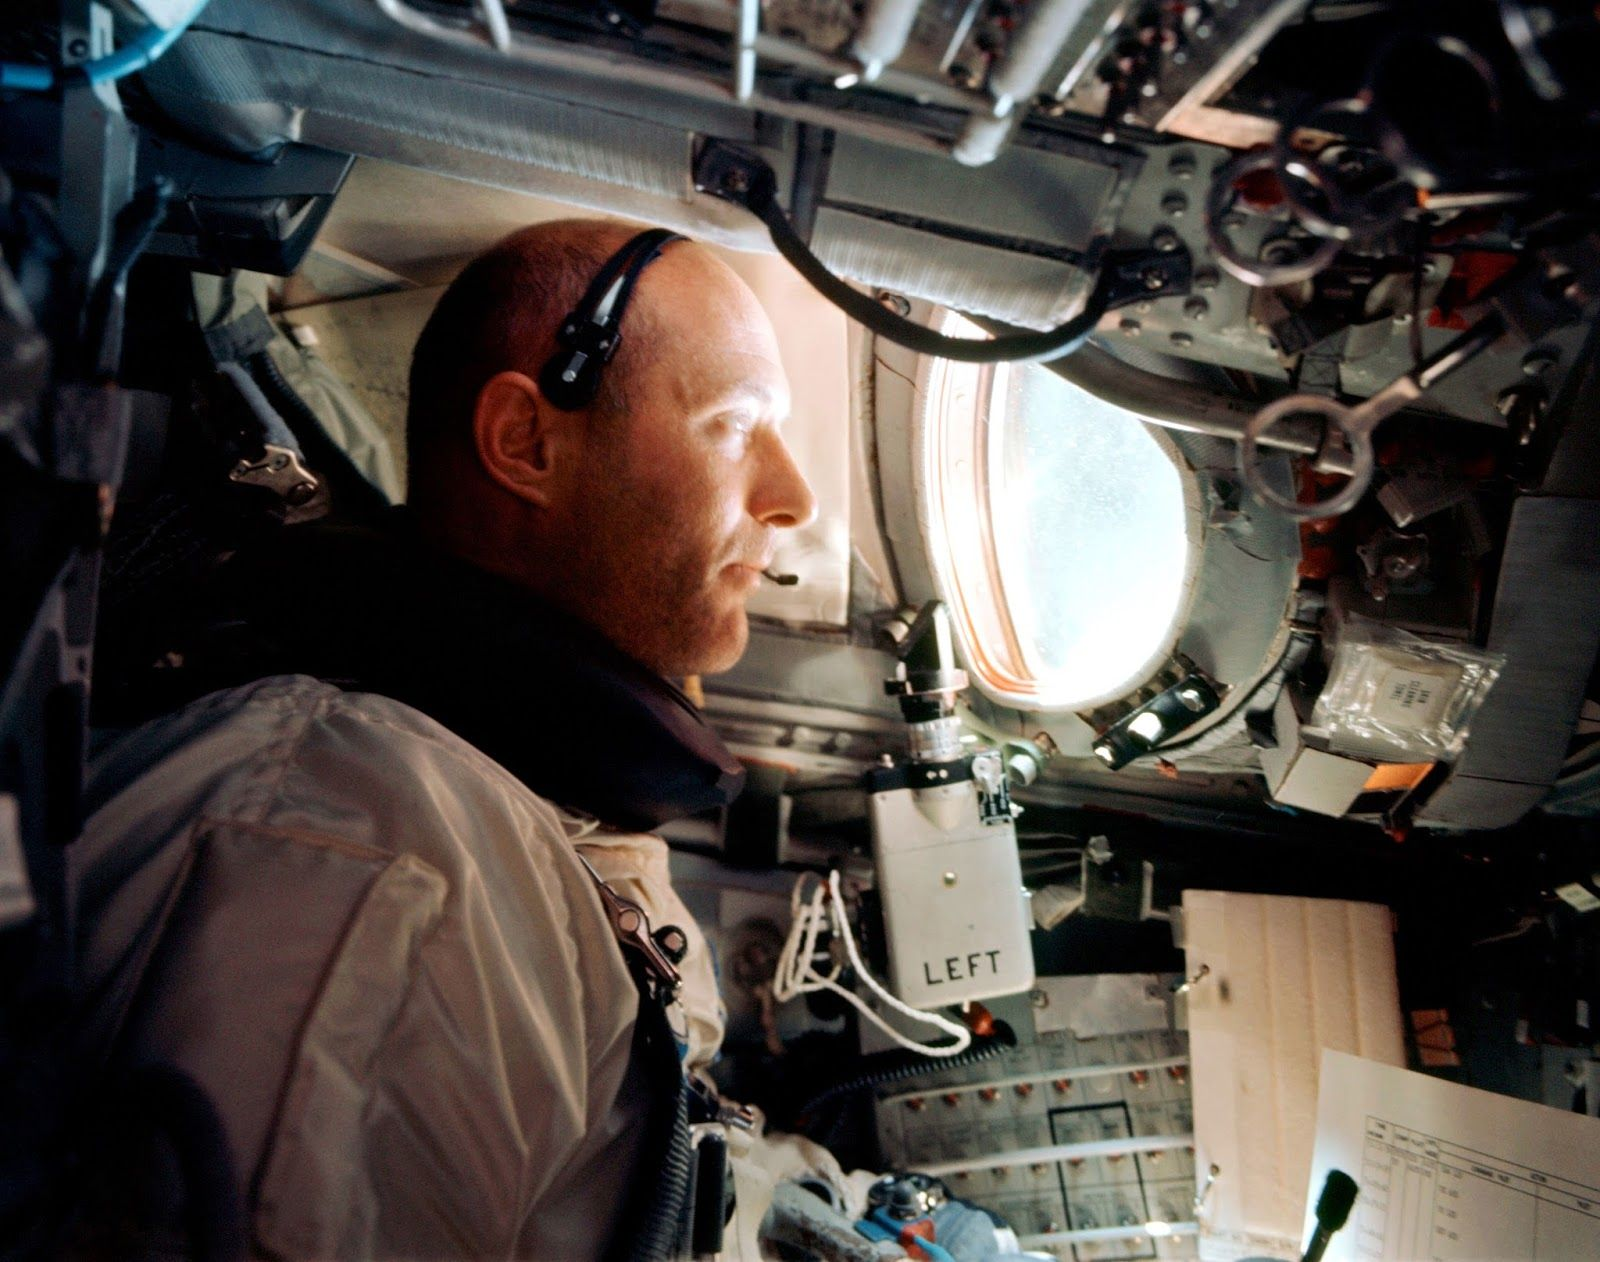 Shortly after reaching orbit on June 3, 1966, Gemini IXA command pilot Tom Stafford is seen at the controls during the mission to rendezvous with an Augmented Target Docking Adapter. Image Credits: NASA/Eugene Cernan.